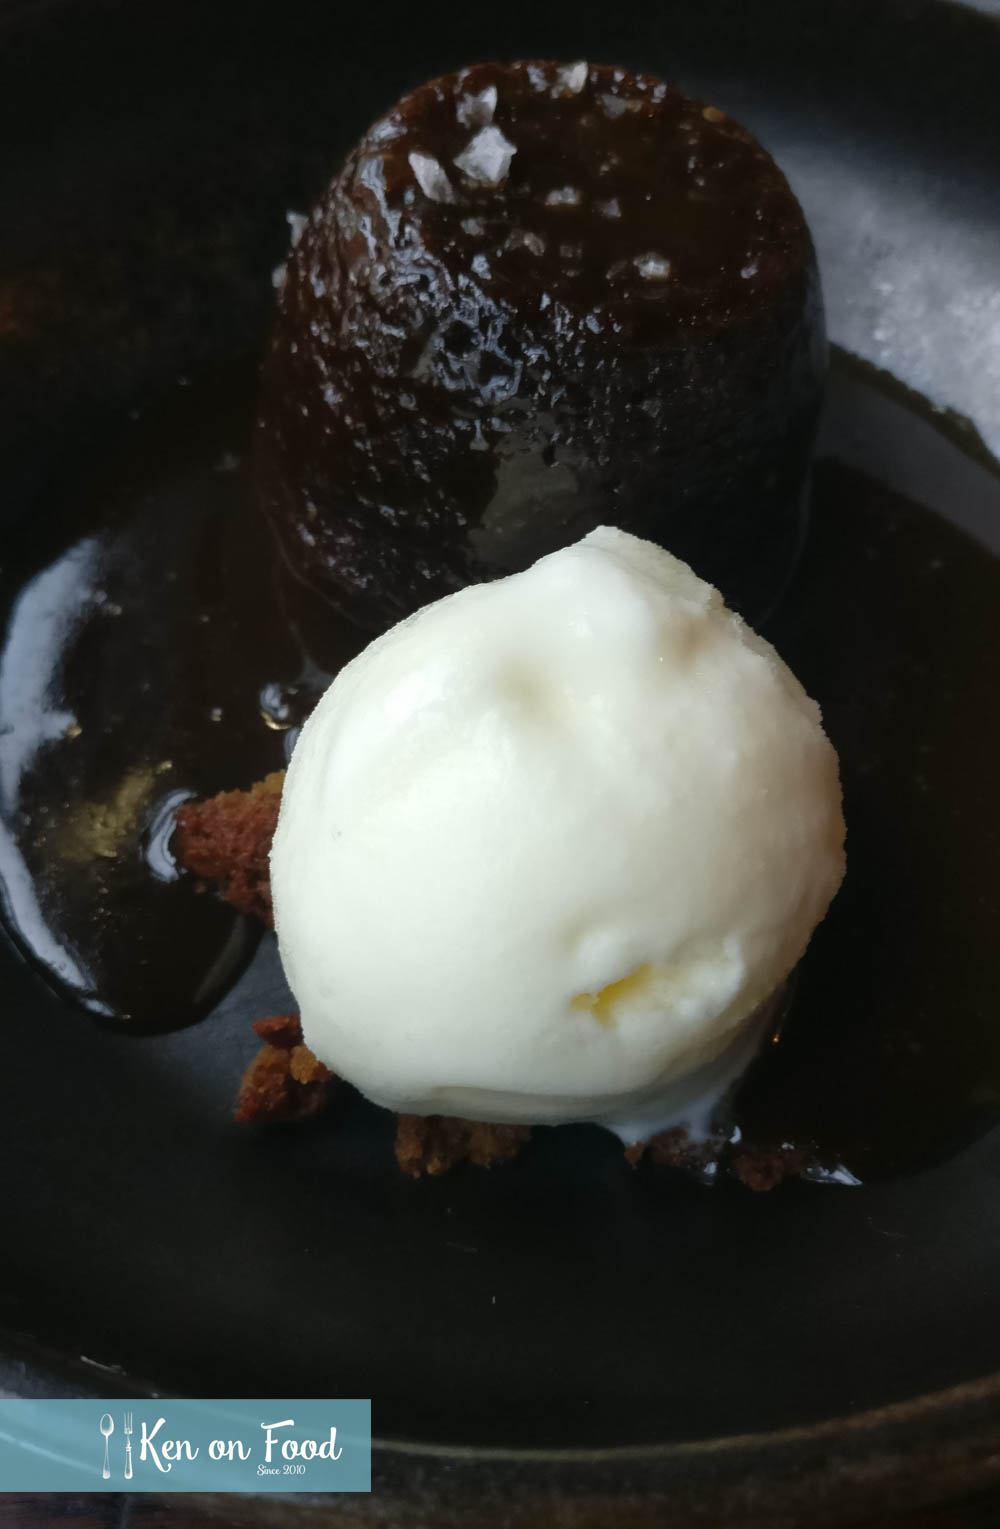 Sticky toffee pudding at Butcher. Photo: Ken McGuire/kenonfood.com